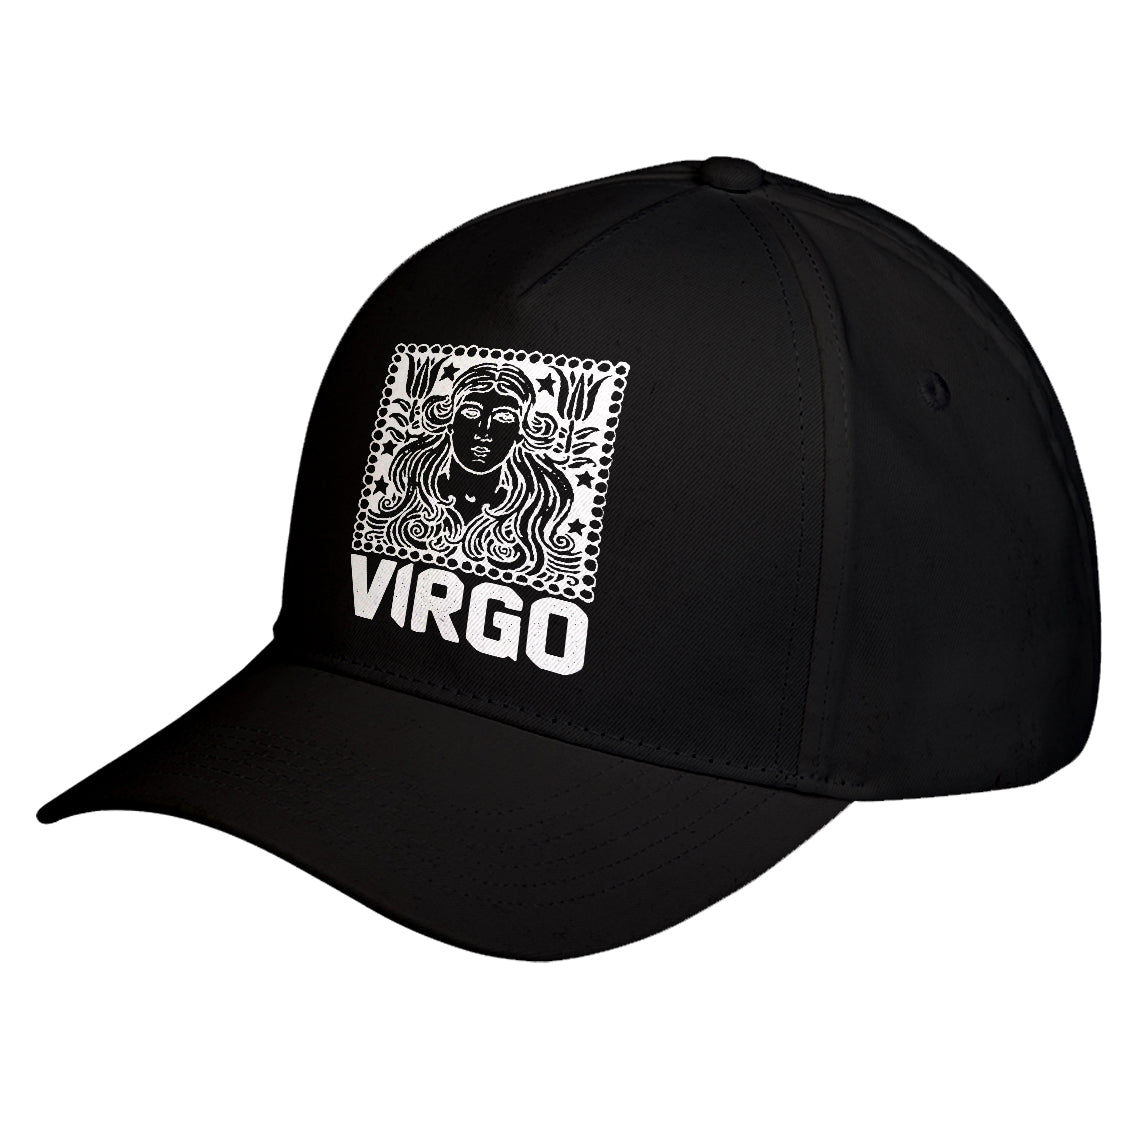 Hat Virgo Zodiac Astrology Baseball Cap